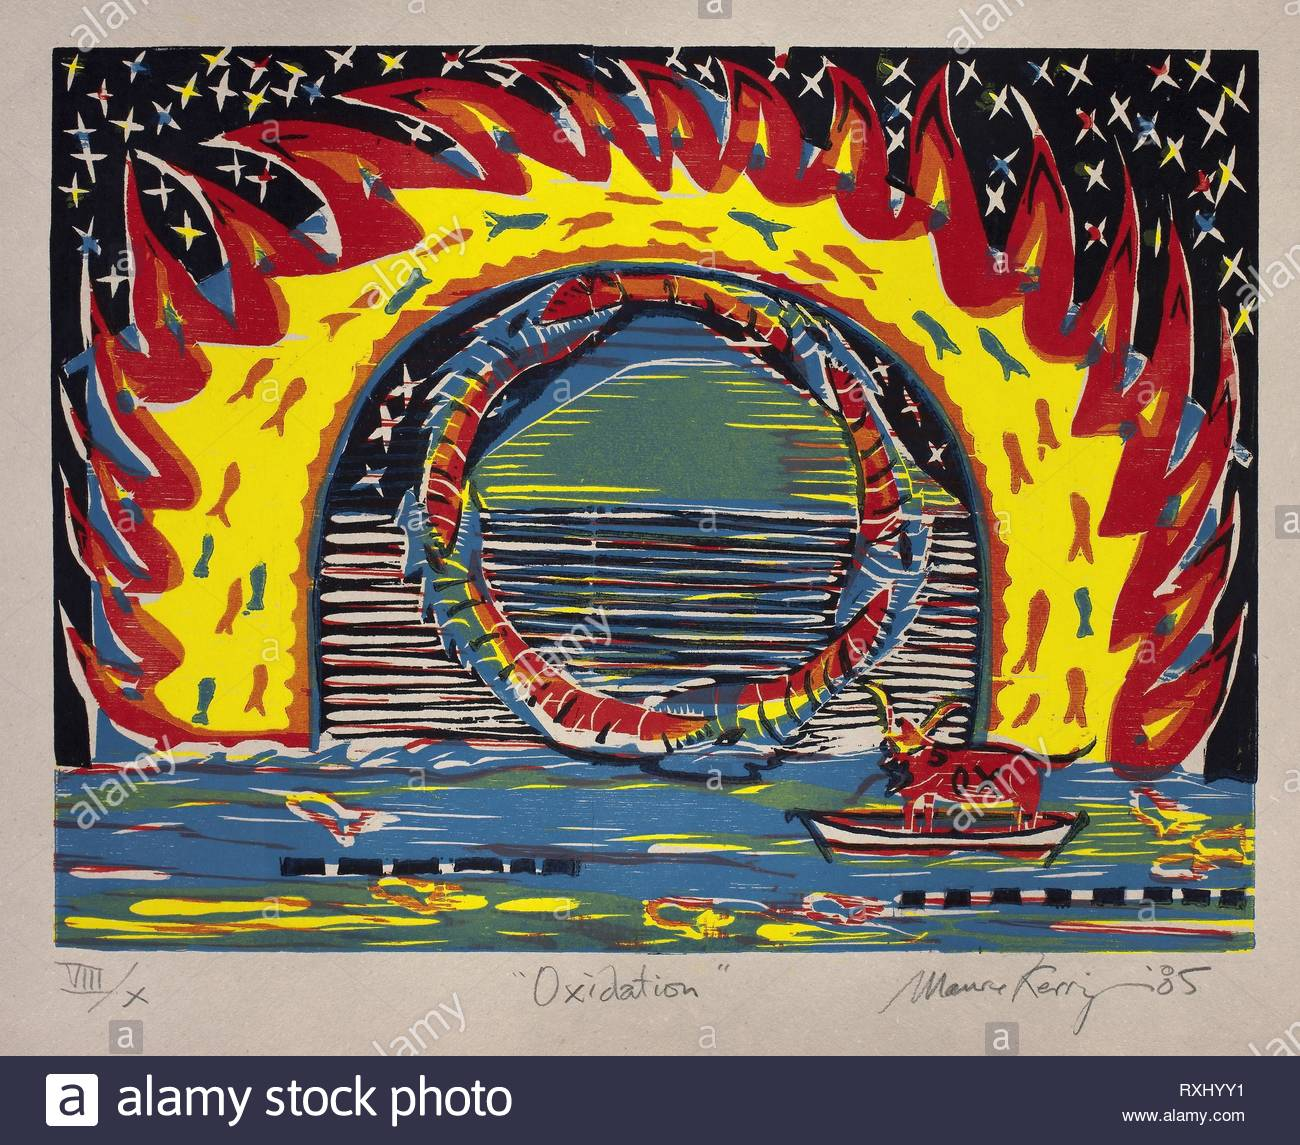 Oxidation. Maurice Kerrigan; American, born 1951. Date: 1985. Dimensions: 455 x 605 mm (image); 590 x 808 mm (sheet). Color woodcut on gray wove paper. Origin: United States. Museum: The Chicago Art Institute. - Stock Image